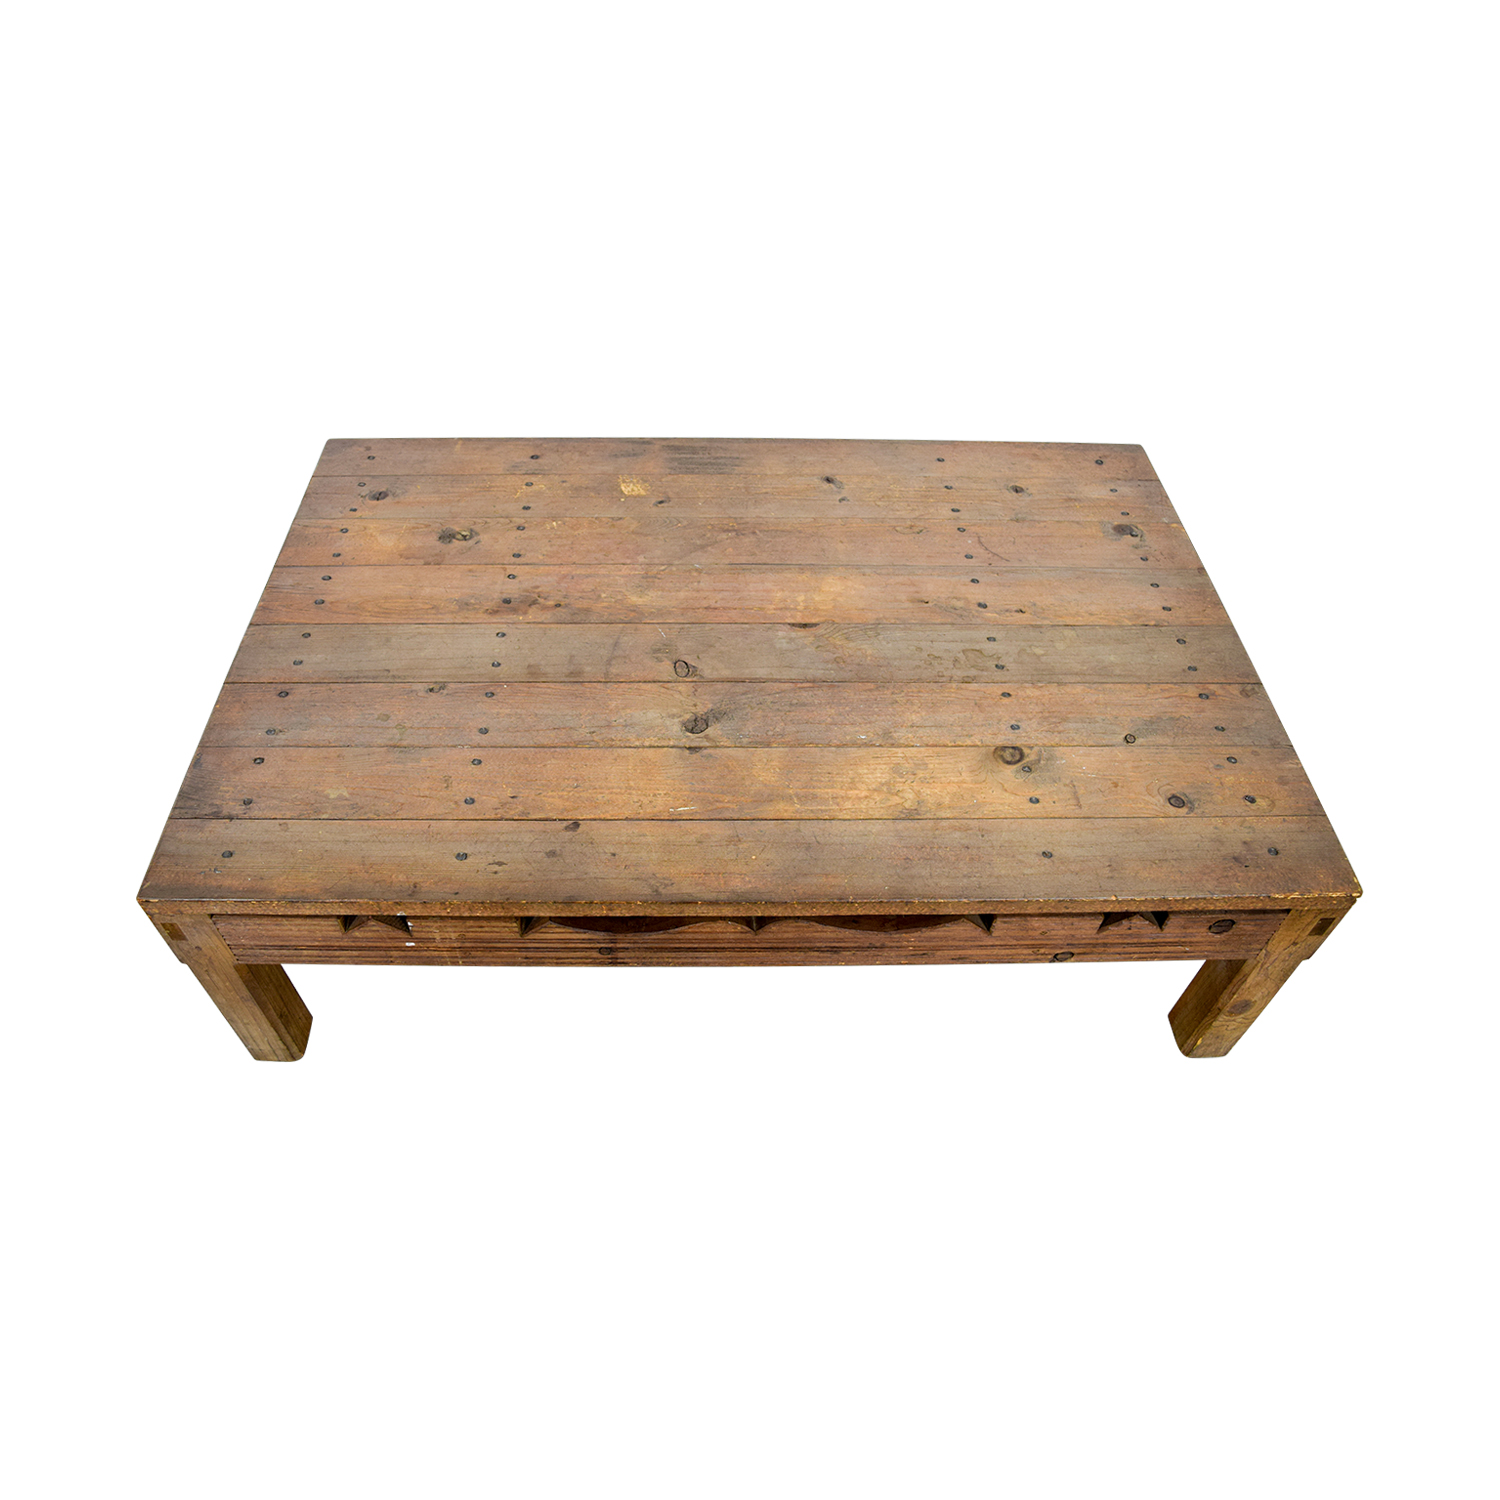 90 OFF Rustic Coffee Table With Cutouts Tables